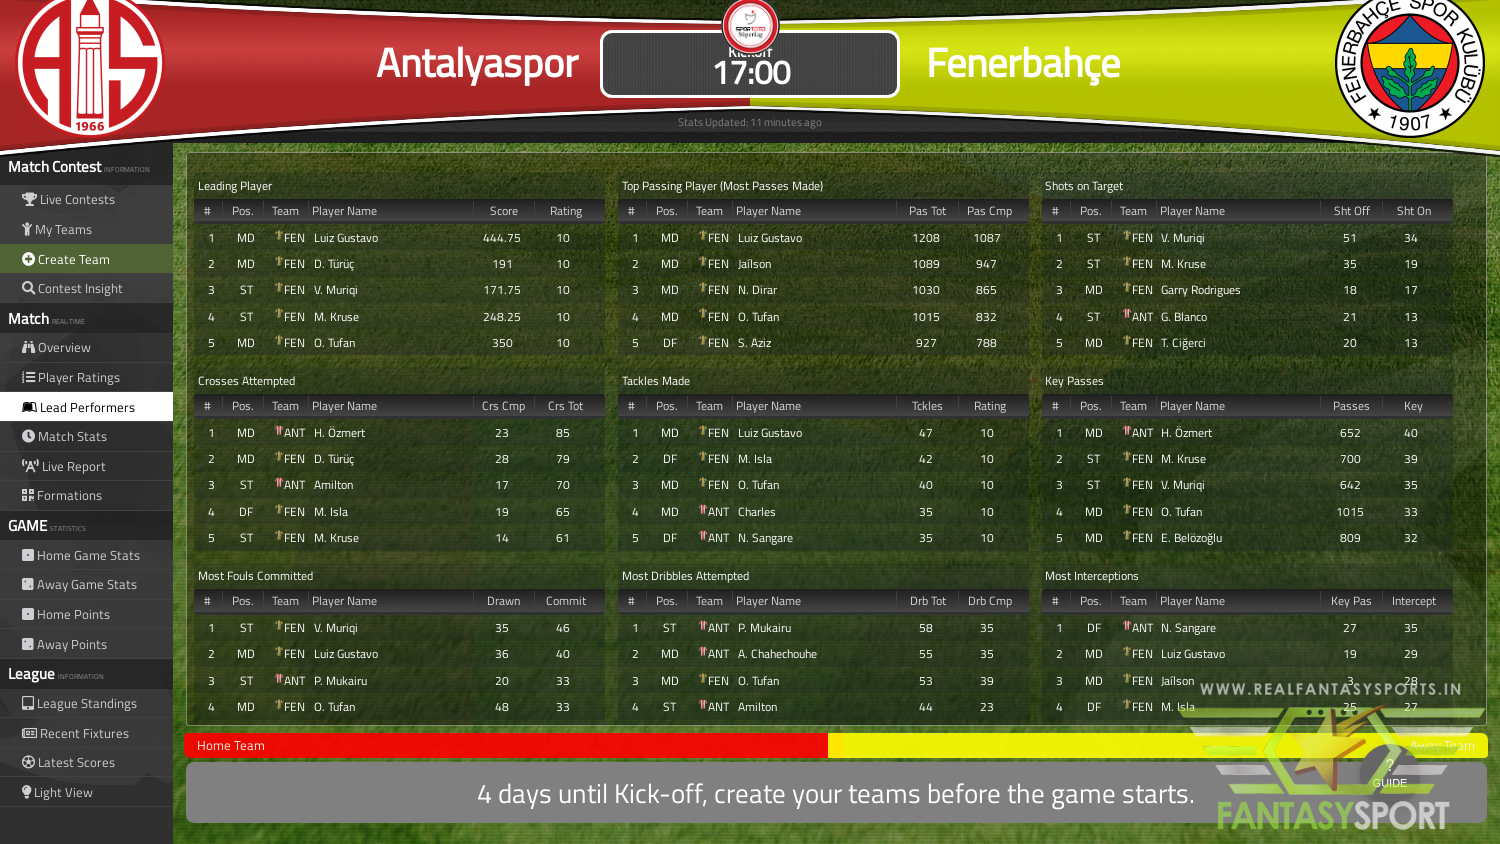 Fantasy Football Antalyaspor Vs Fenerbah E Saturday 29th February 2020